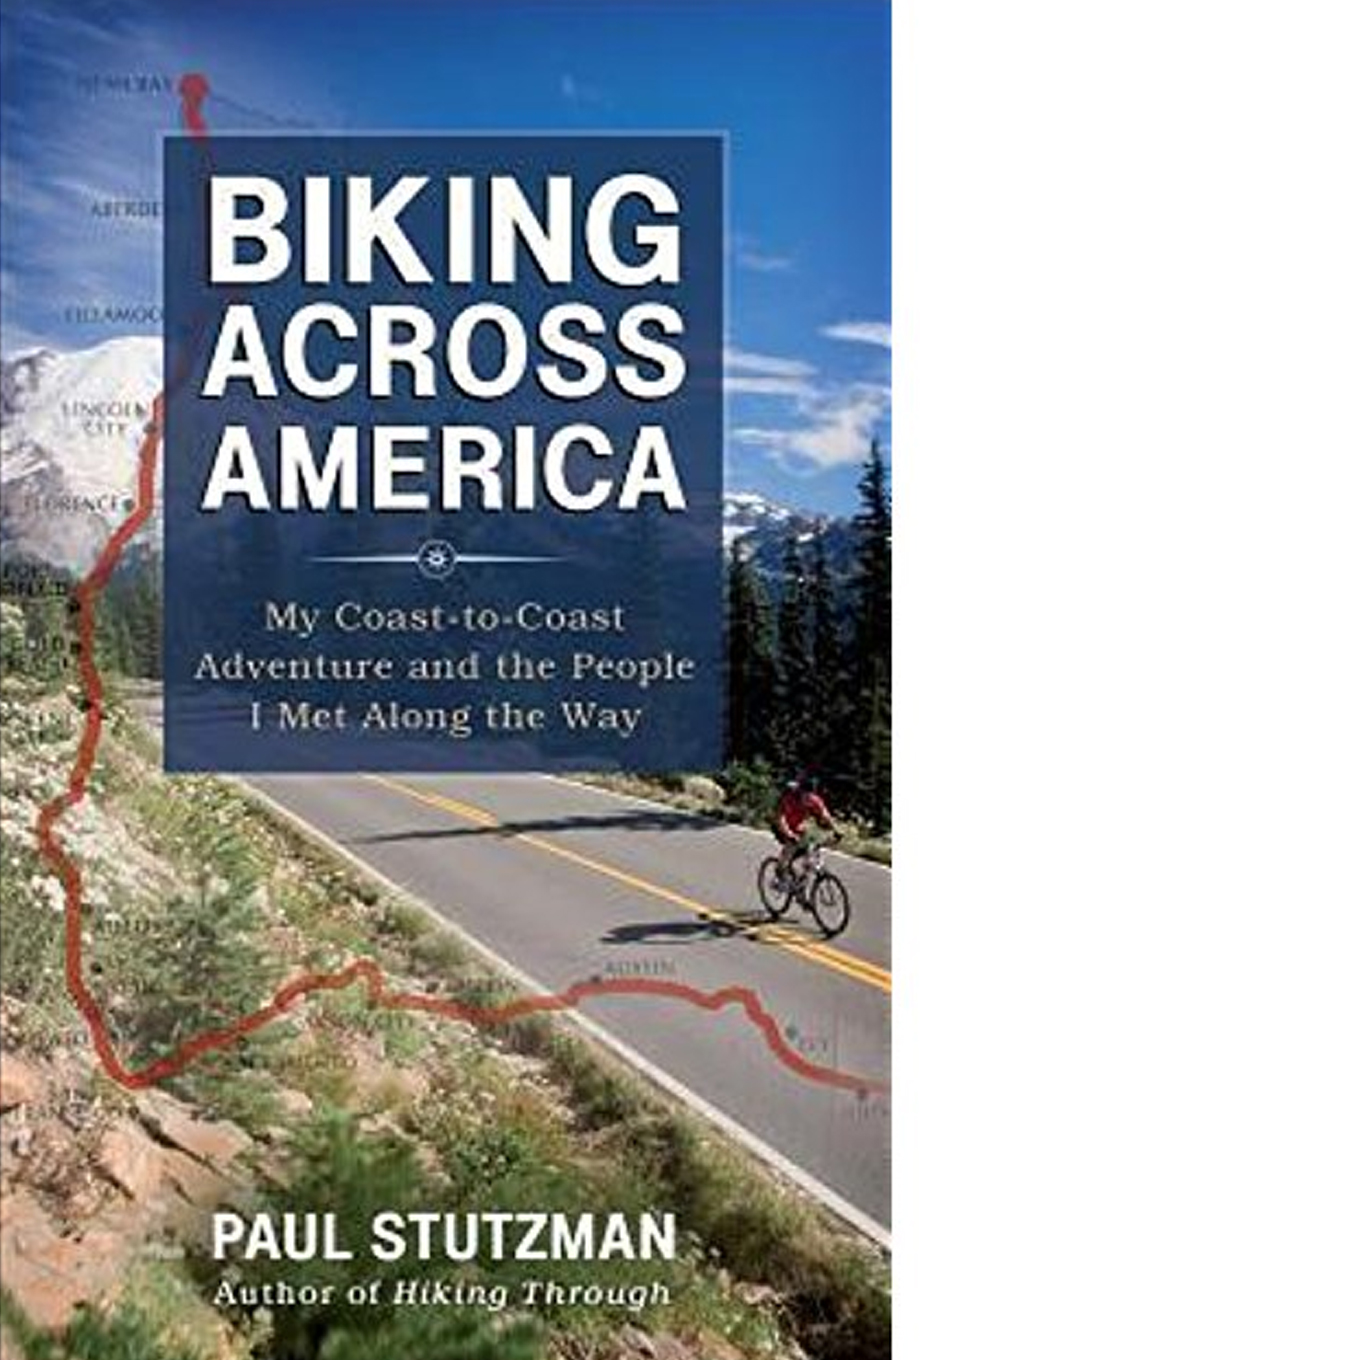 Biking Across America: My Coast-to-Coast Adventure and the People I Met Along the Way  - May 15, 2013  After taking readers down the Appalachian Trail, Paul Stutzman brings them on a new adventure, biking from Neah Bay, Washington, to Key West, Florida, encountering fascinating people along the way.    $5.28 Kindle     |     $11.42 Paperback   $23.07 Audio CD